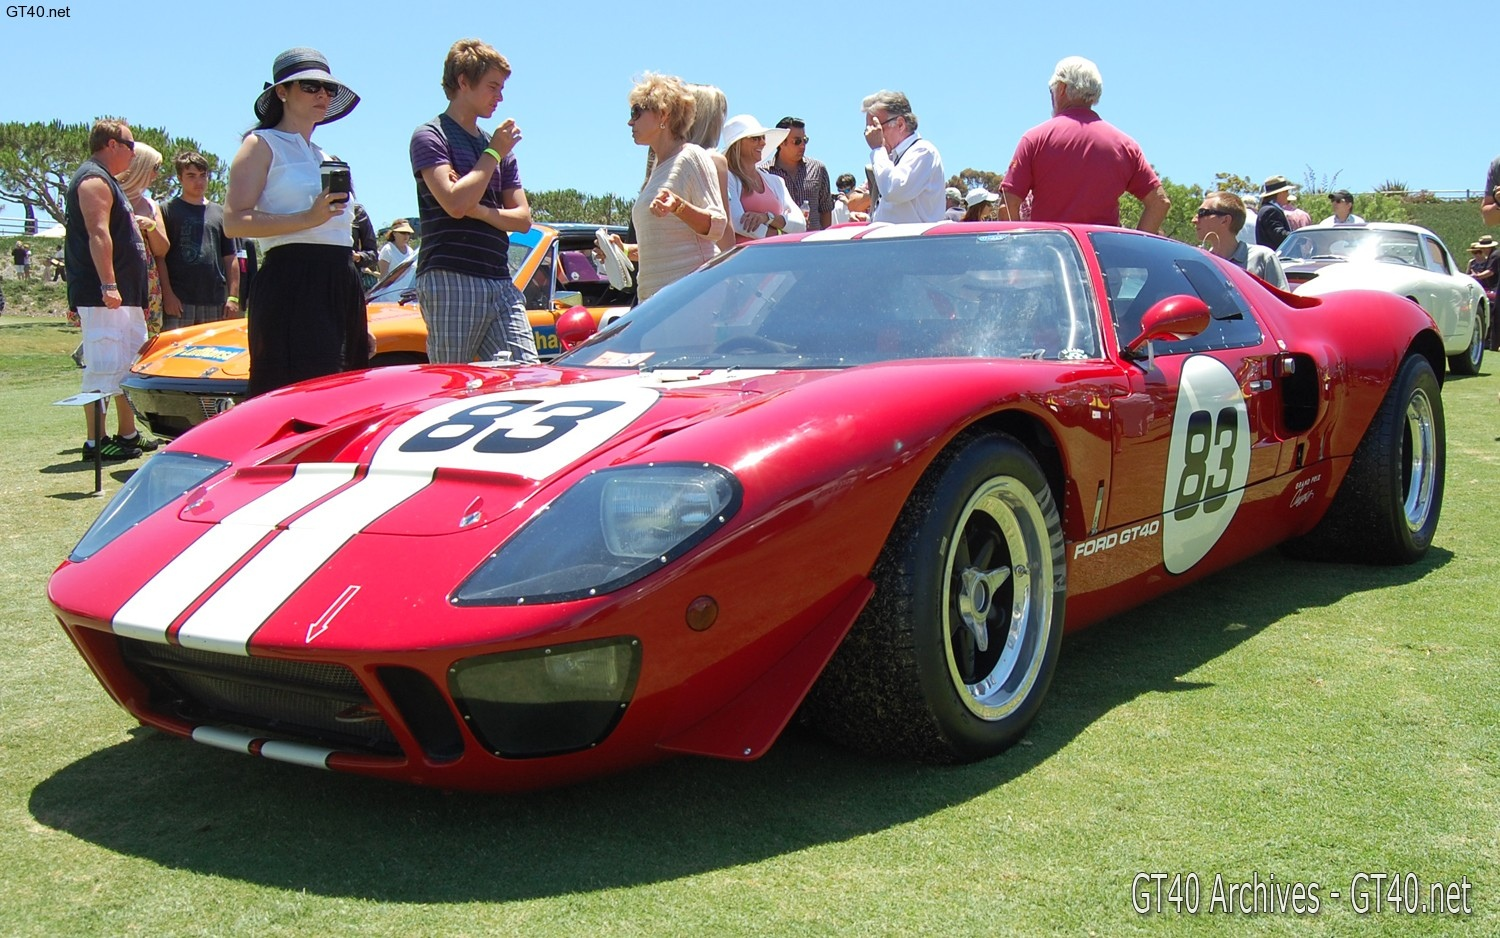 1969 ford gt40 red gt40 archives. Black Bedroom Furniture Sets. Home Design Ideas